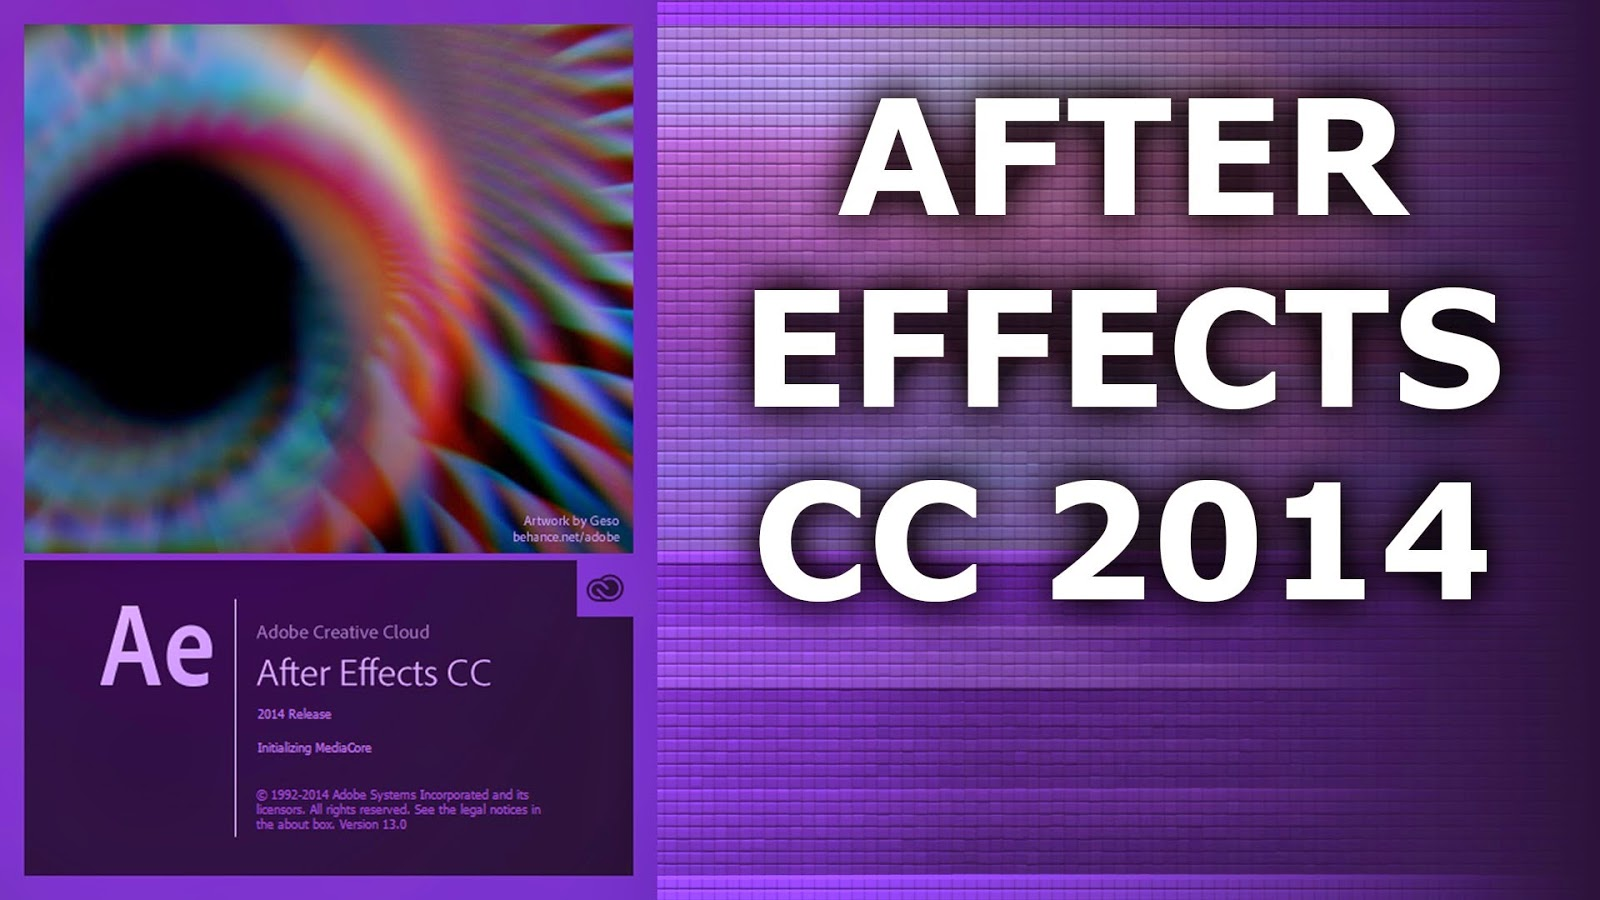 After Effects CC 12.2.1 Keygen Pc Mac Cracked